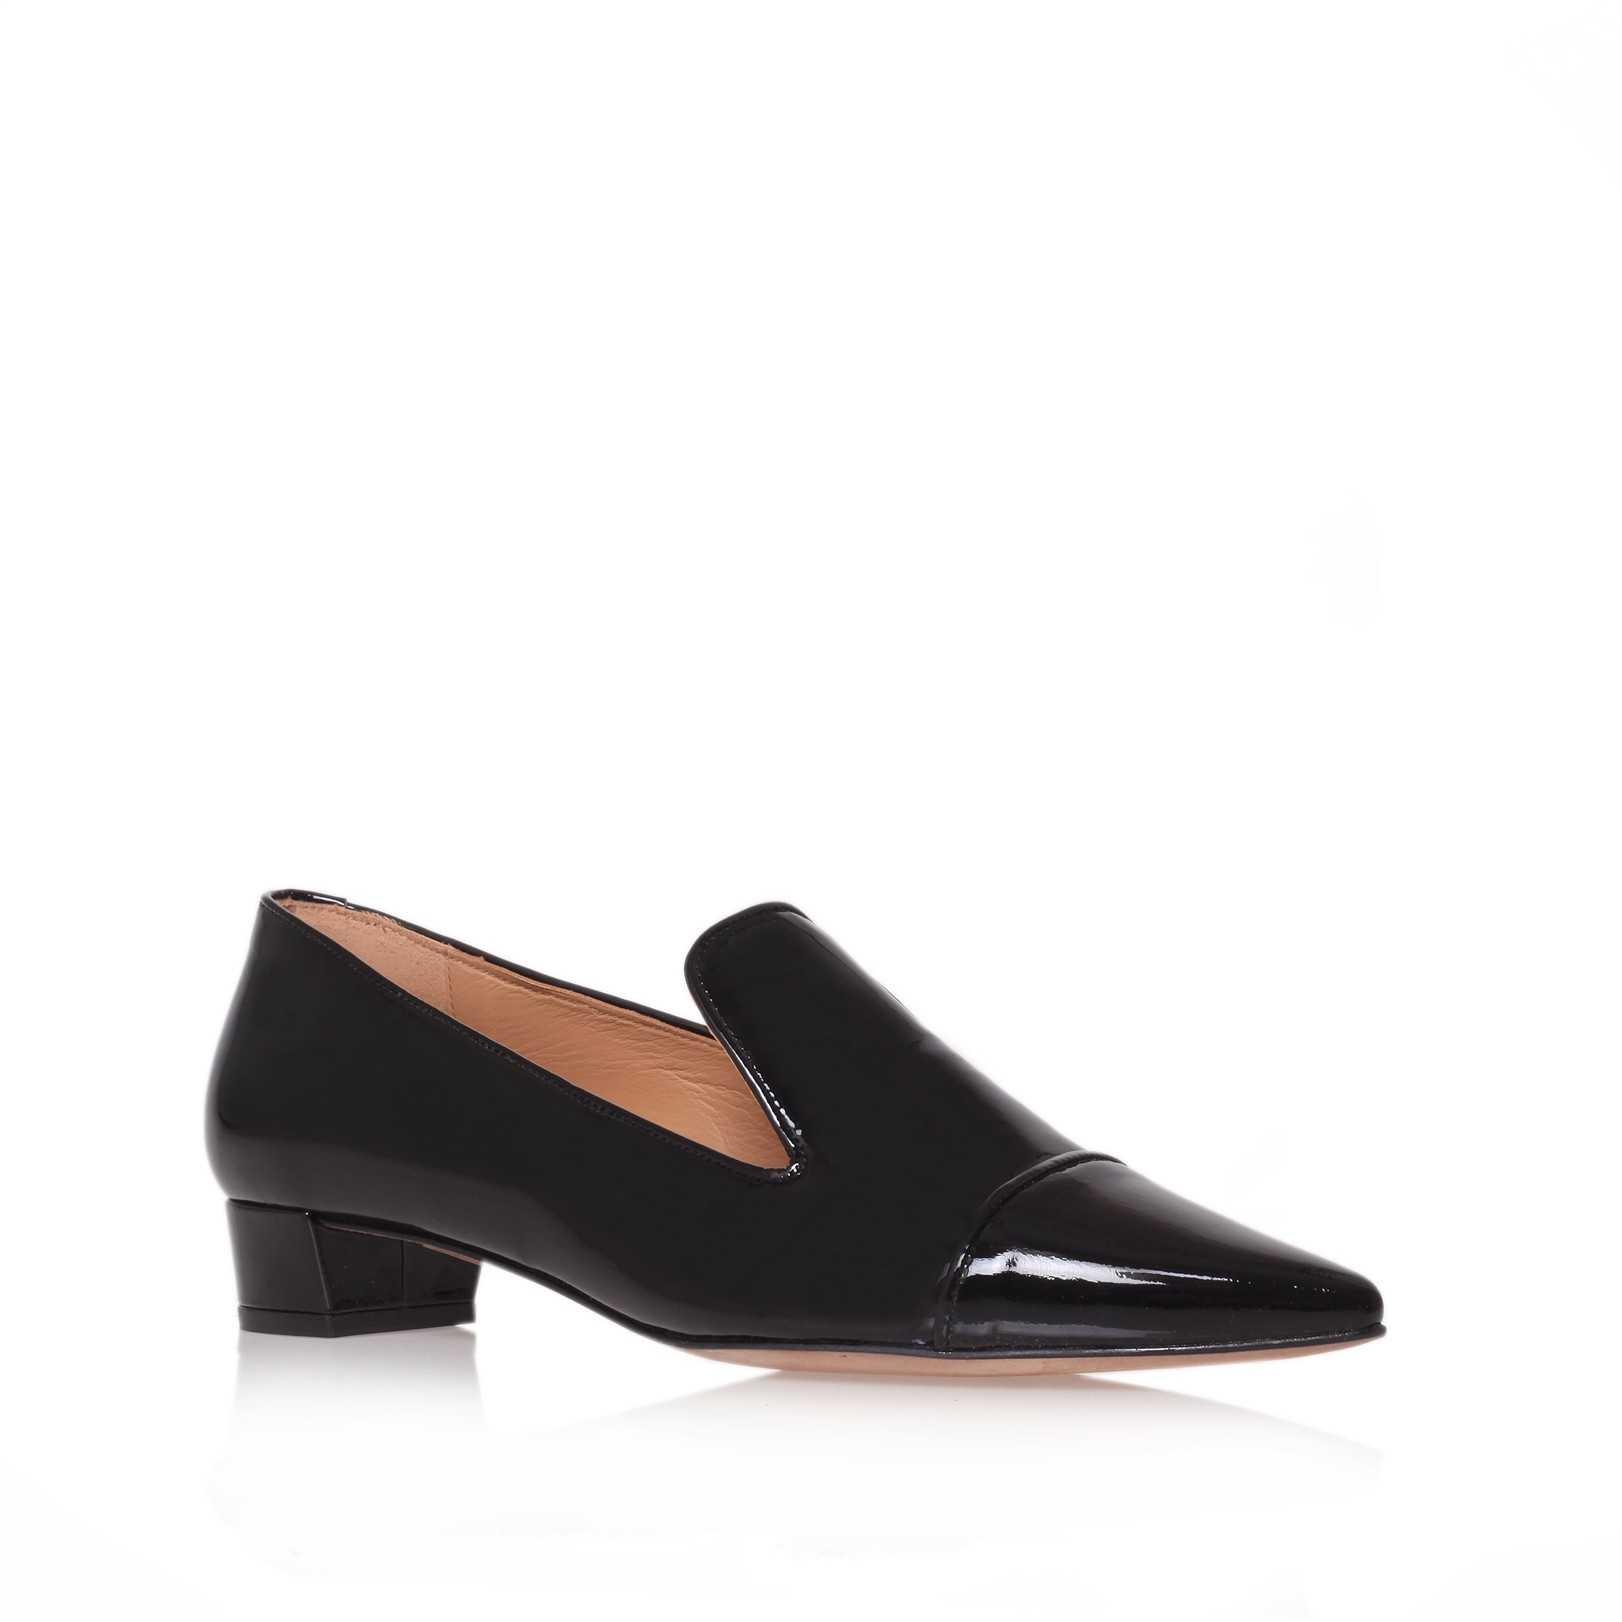 Kurt Geiger |  LILLE - Flats - Shoes - Women